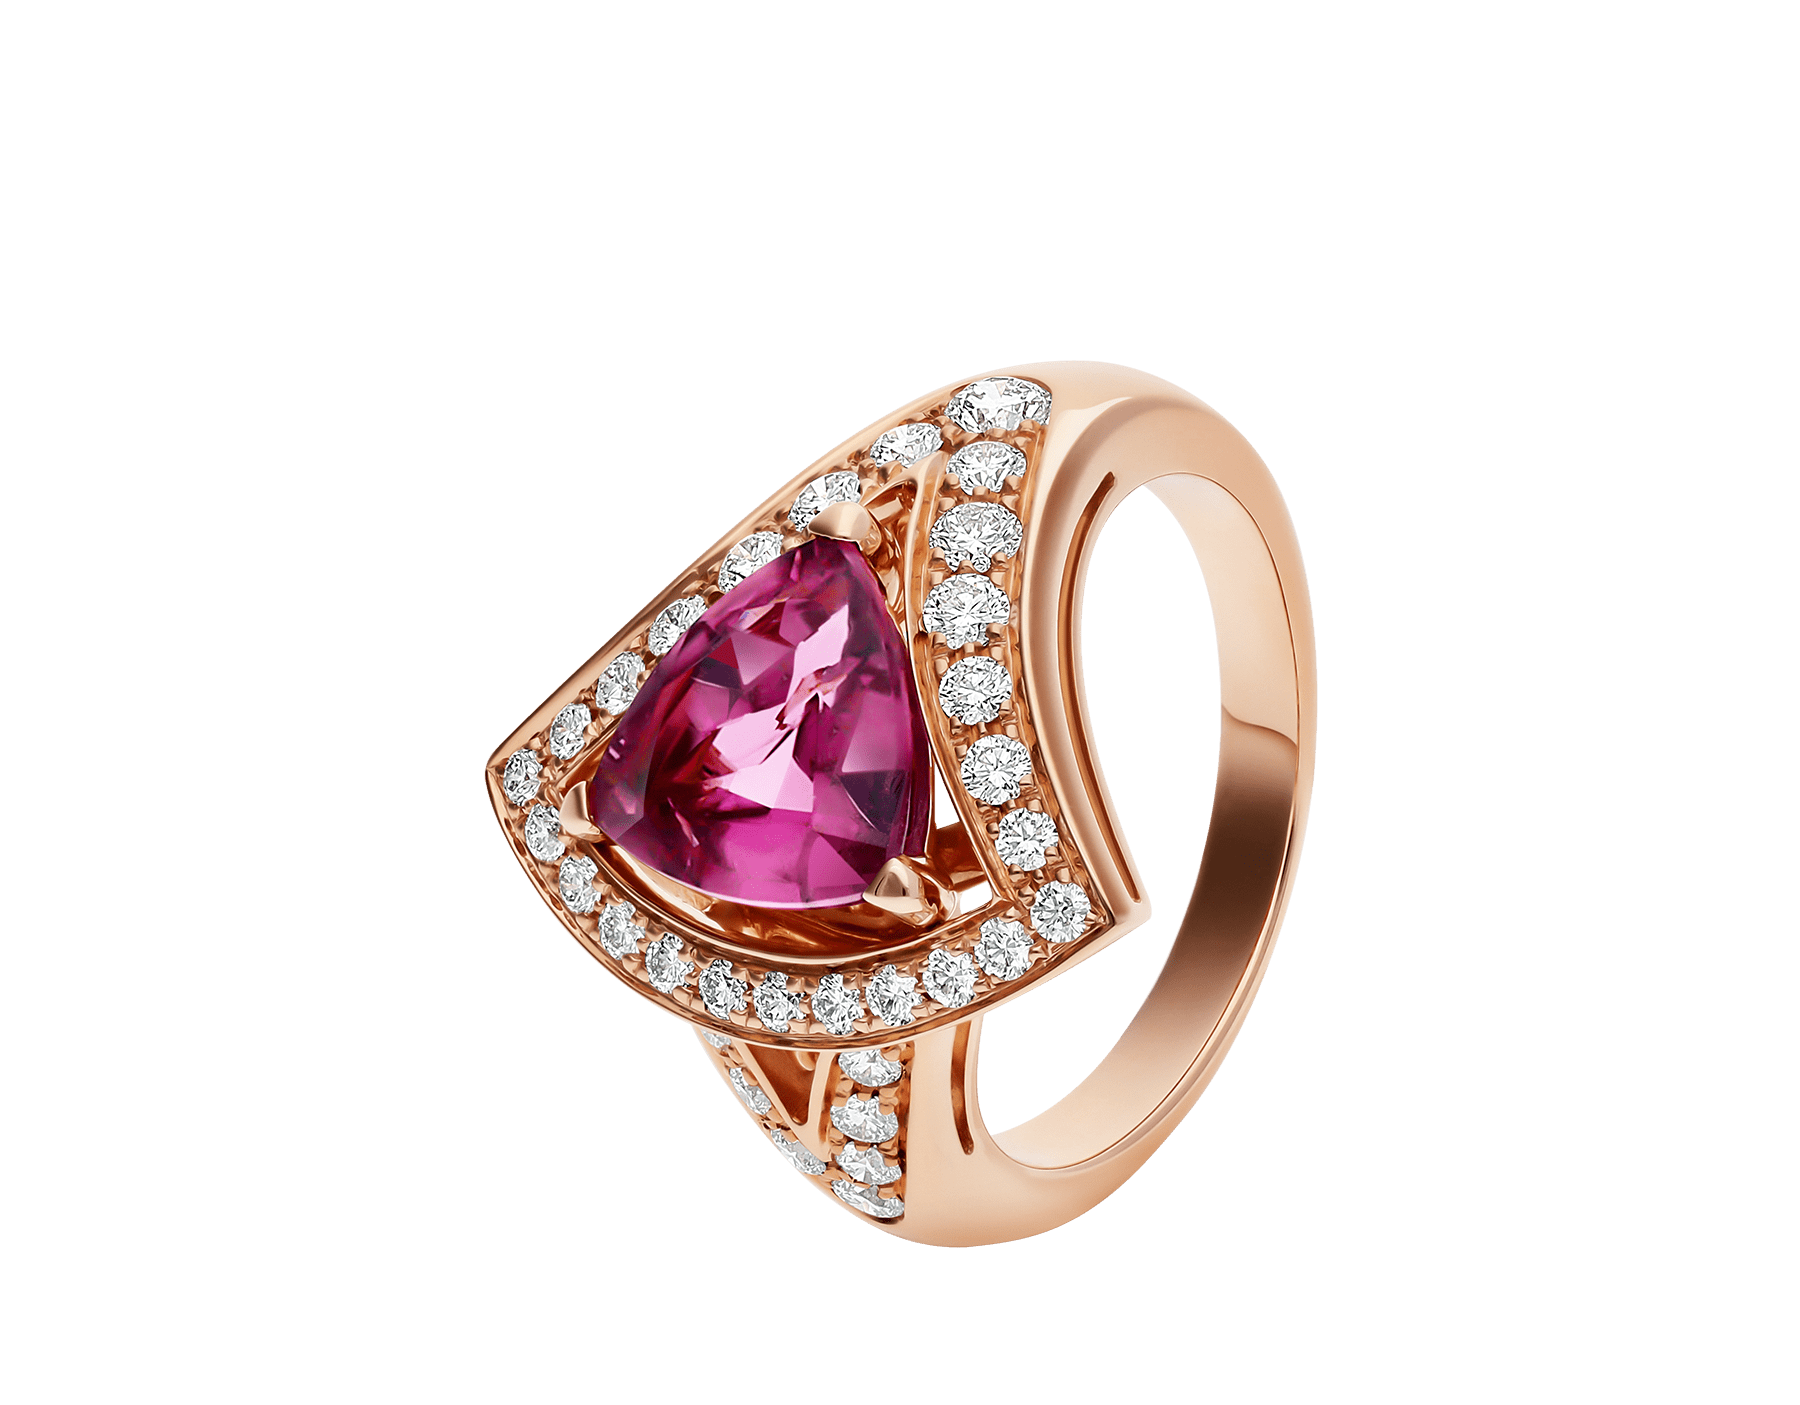 DIVAS' DREAM openwork ring in 18 kt rose gold with a pink tourmaline and set with pavé diamonds. AN858124 image 1